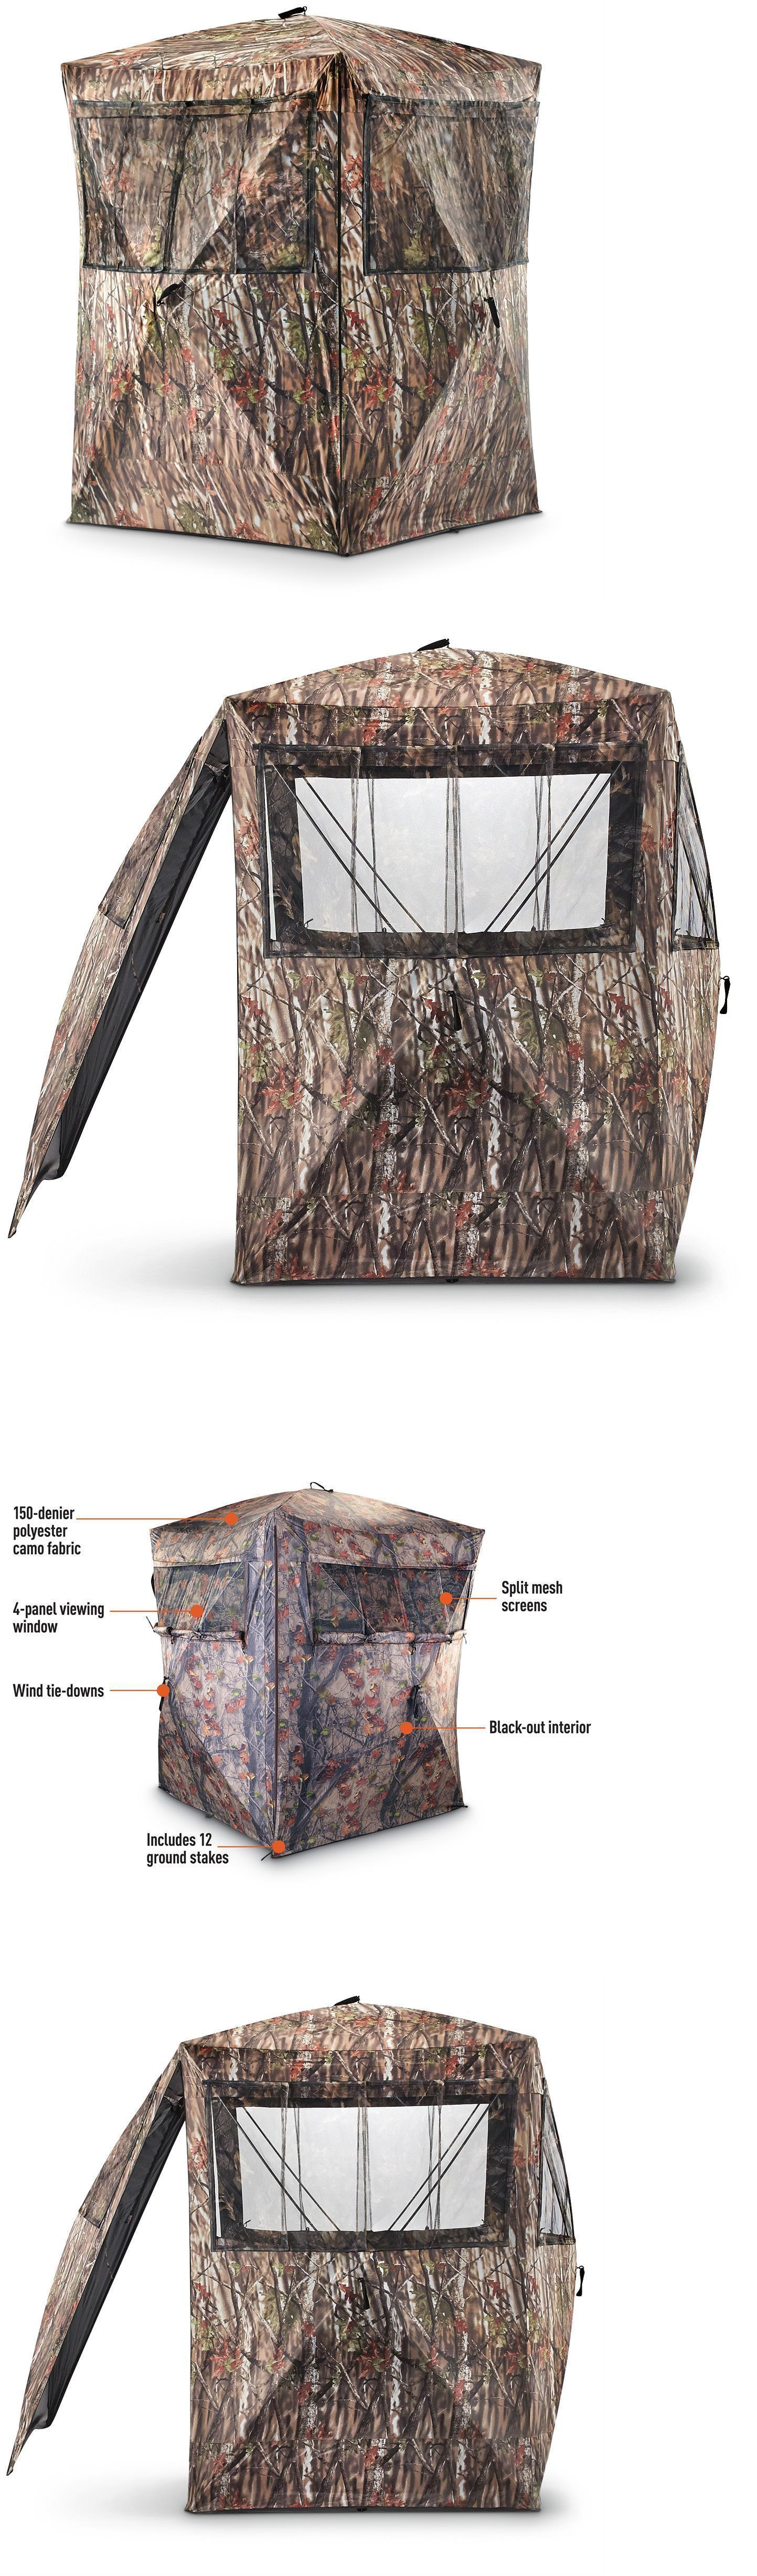 al gbp deer blinds predator ghostblind canada dp hunting amazon box for panel sale blind az